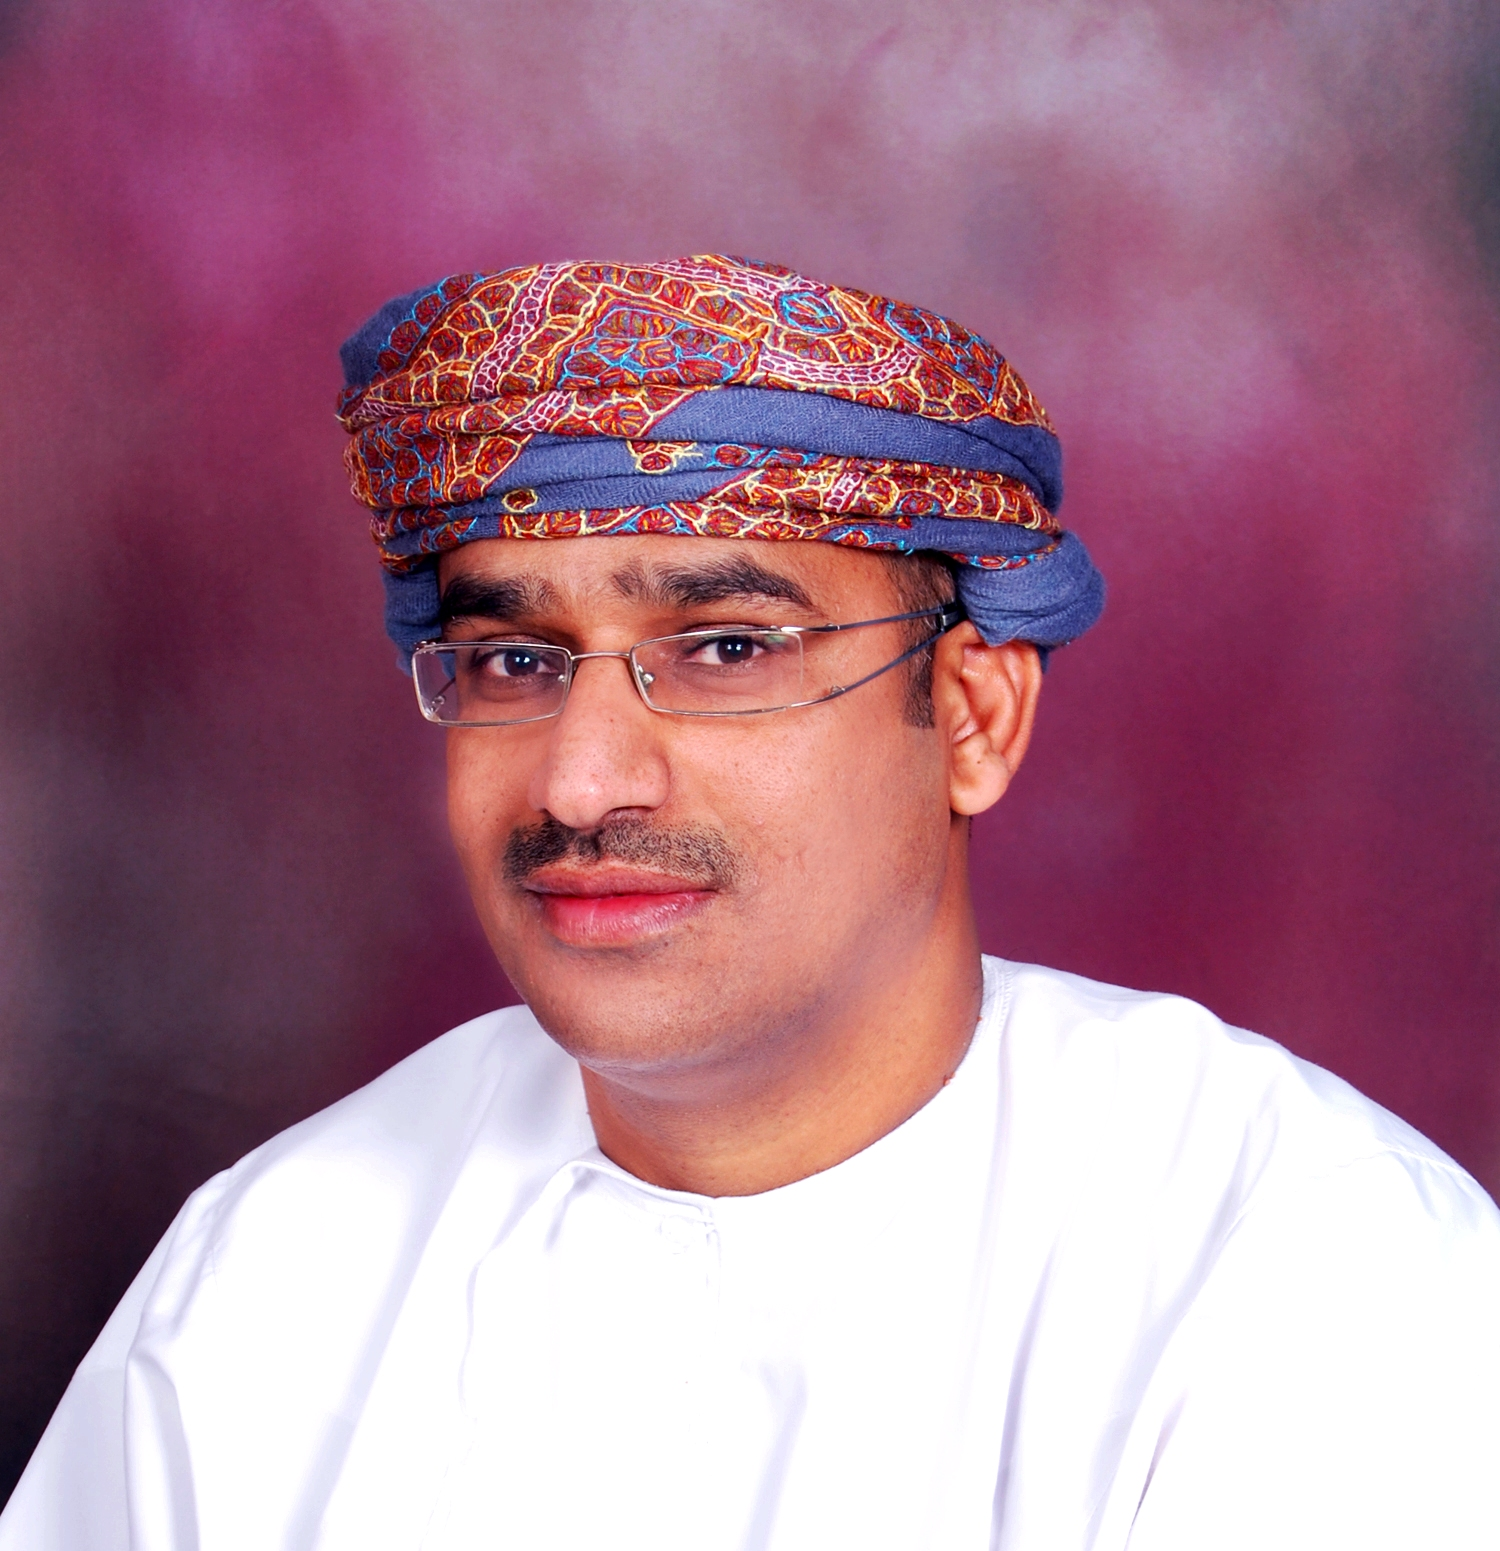 Photo of Mohammed Al-Amri